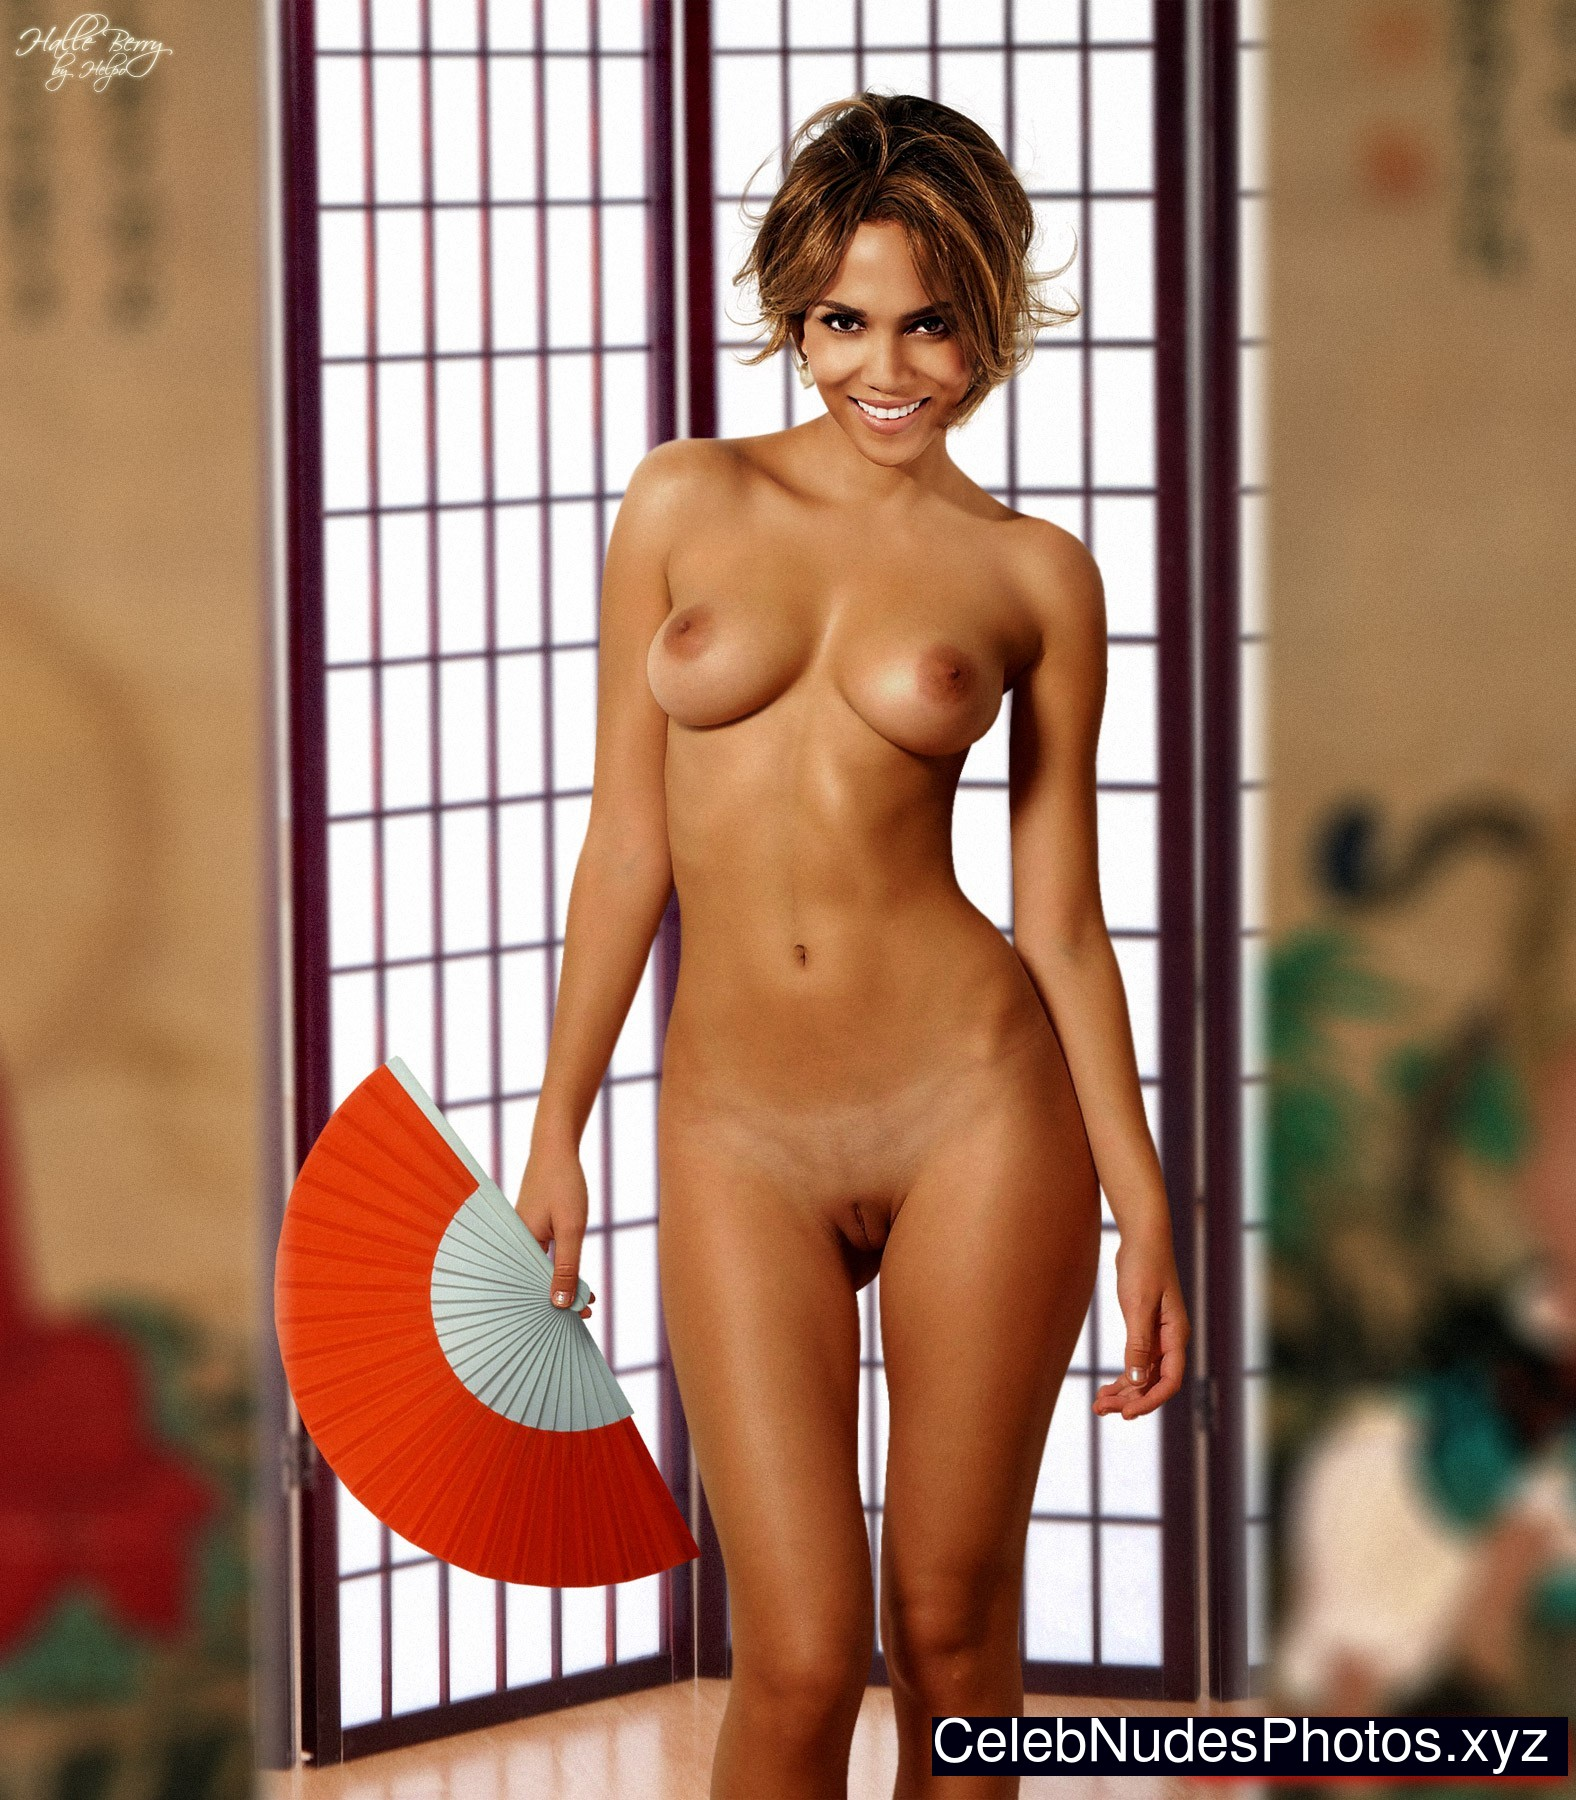 Consider, Halle Berry nude photos